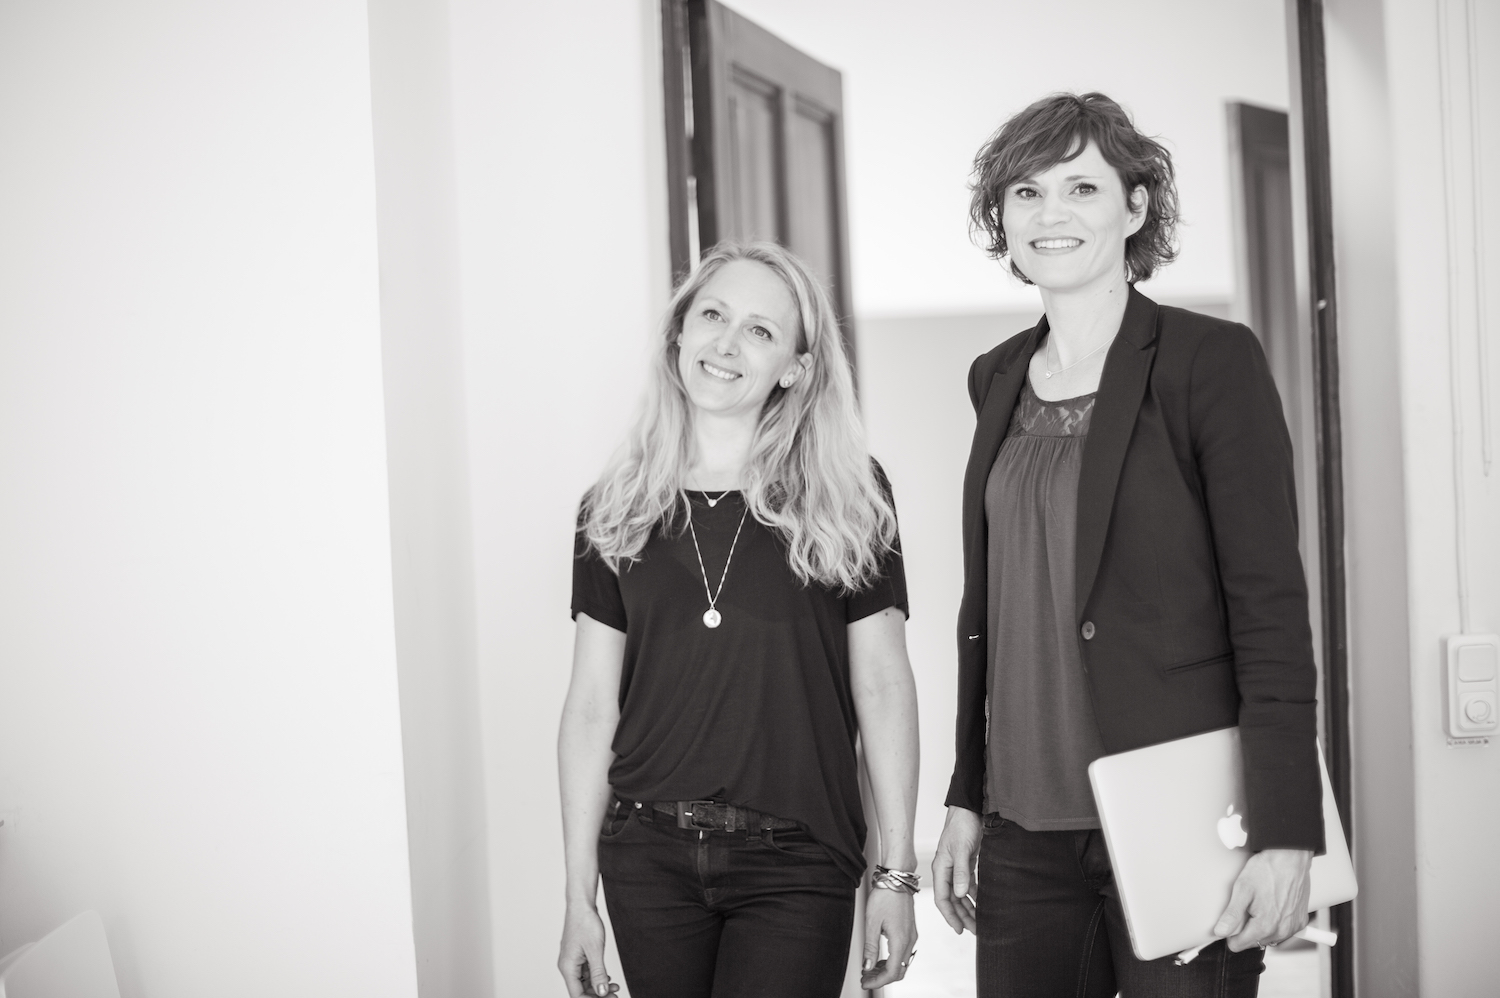 Kristina and Susanne, co-founders and management at 1928.